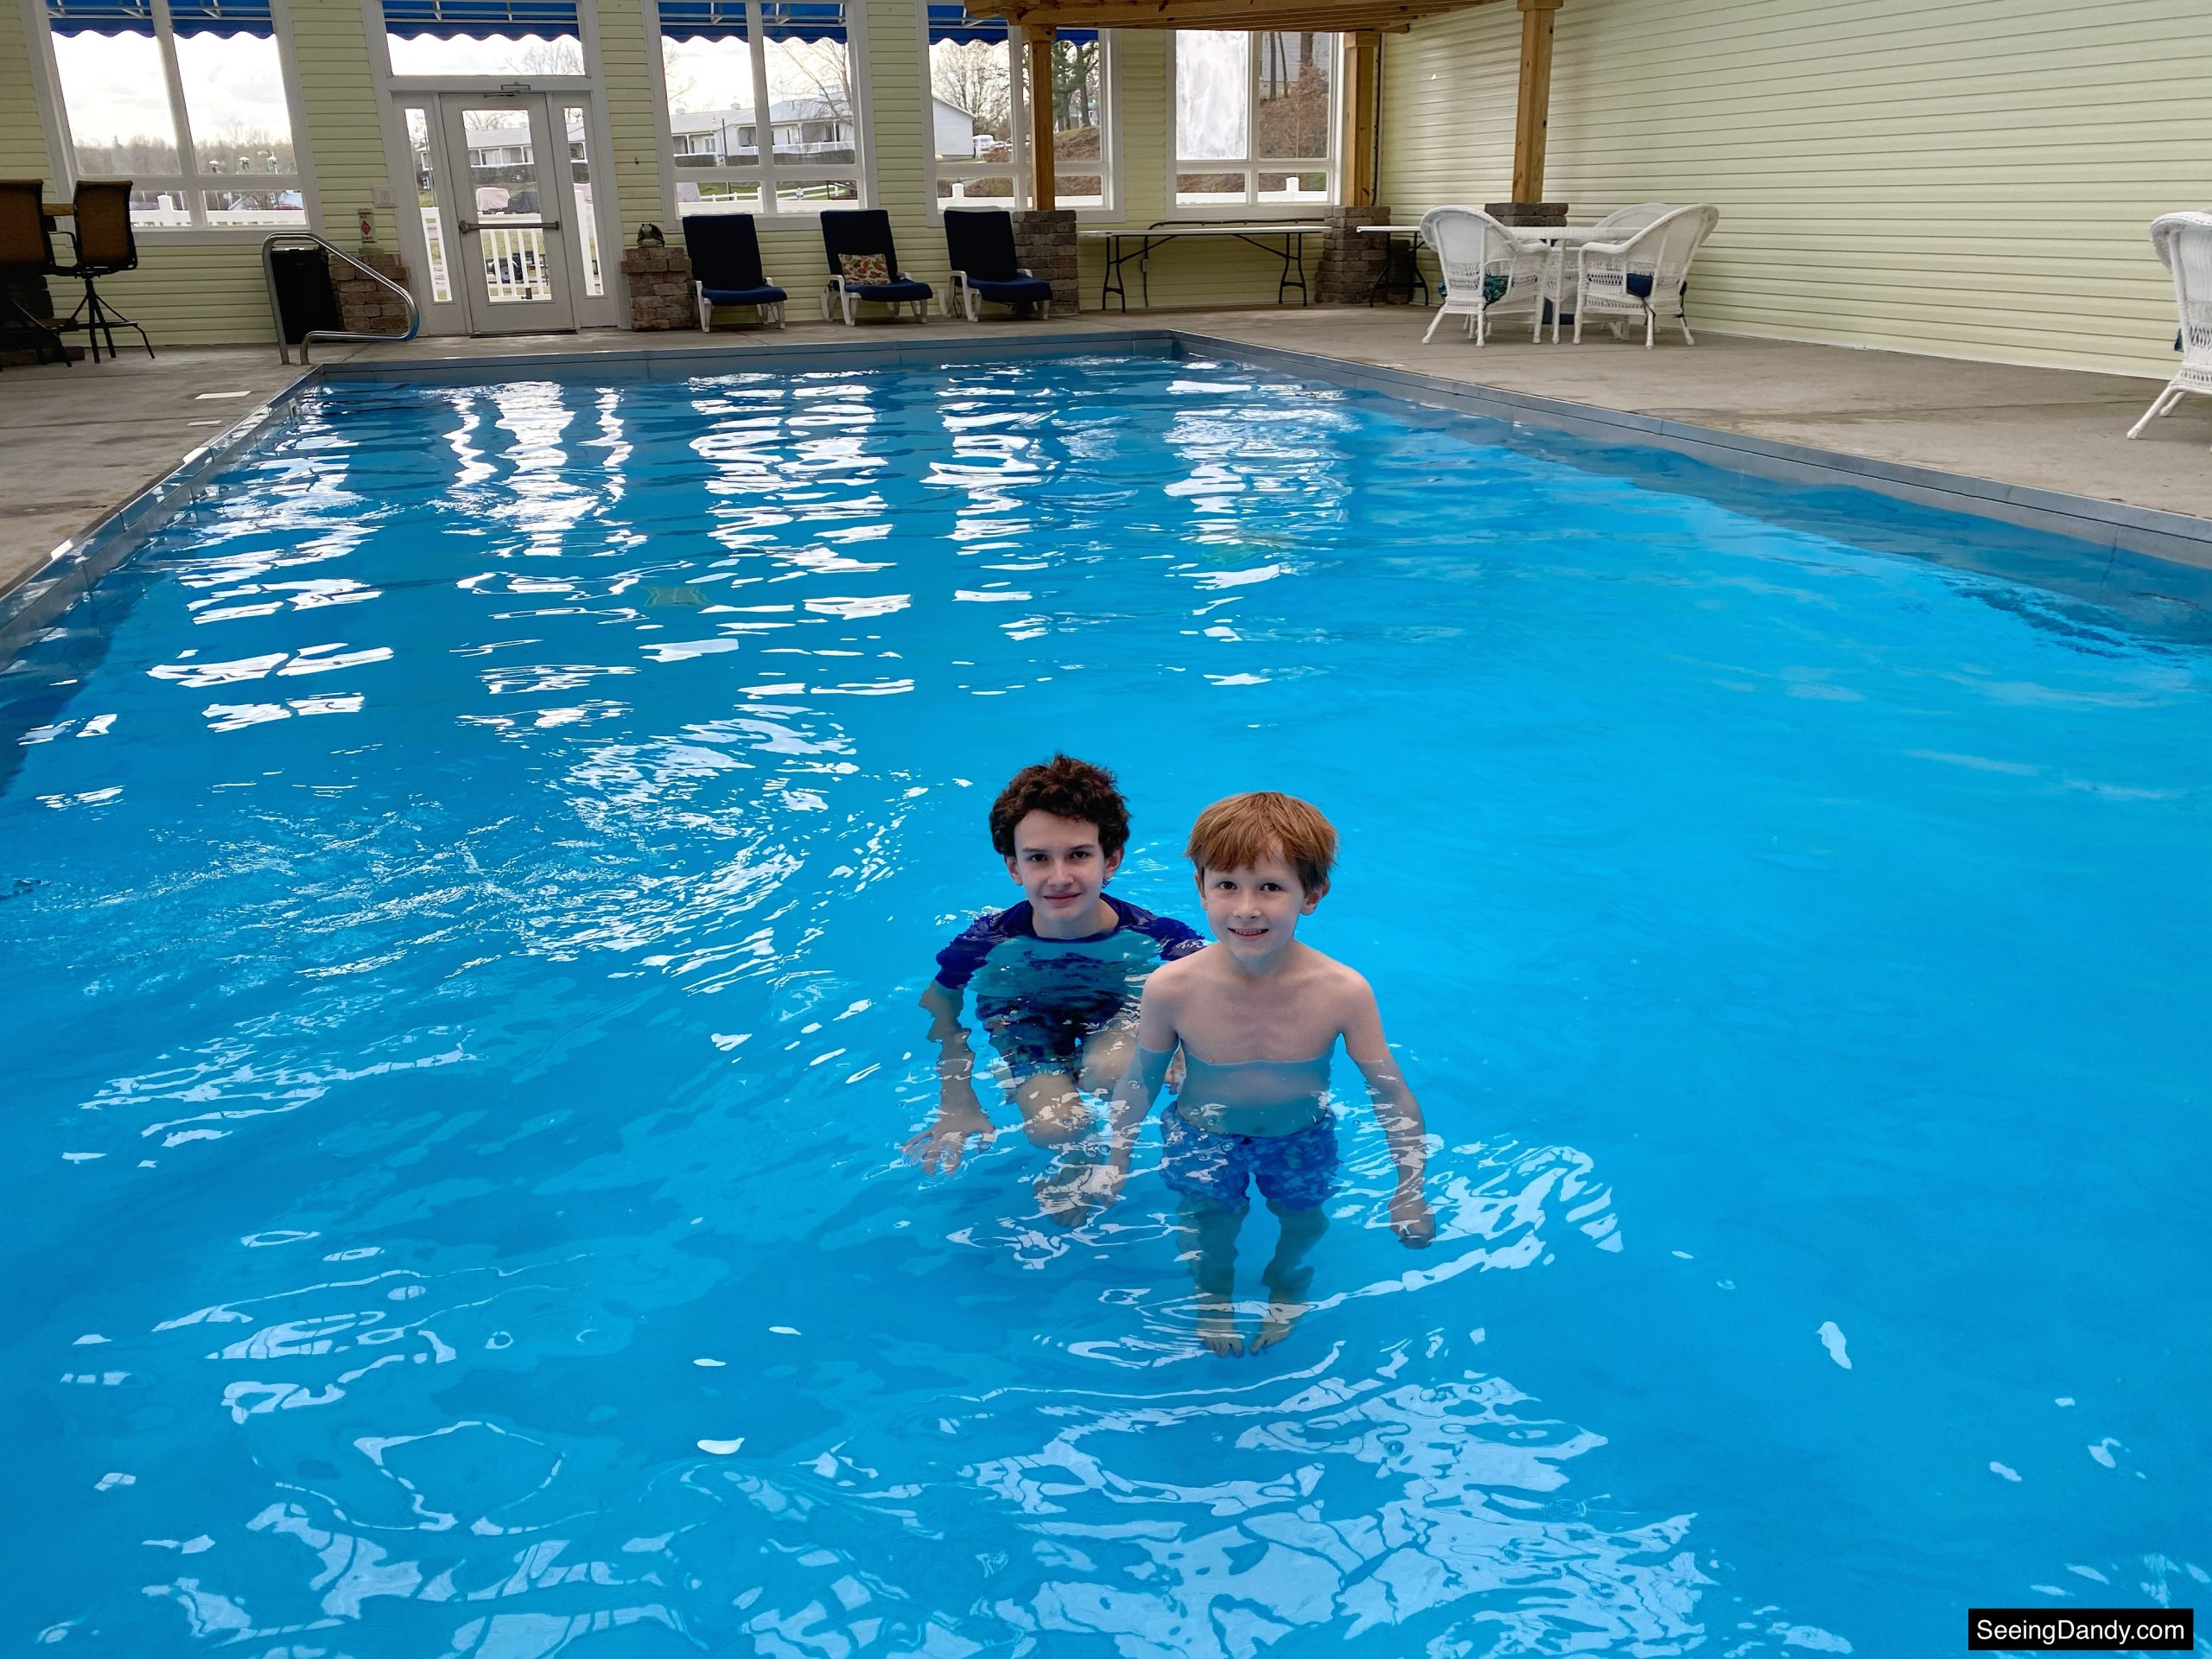 green turtle bay indoor pool, grand rivers kentucky pool, grand rivers resort, family travel